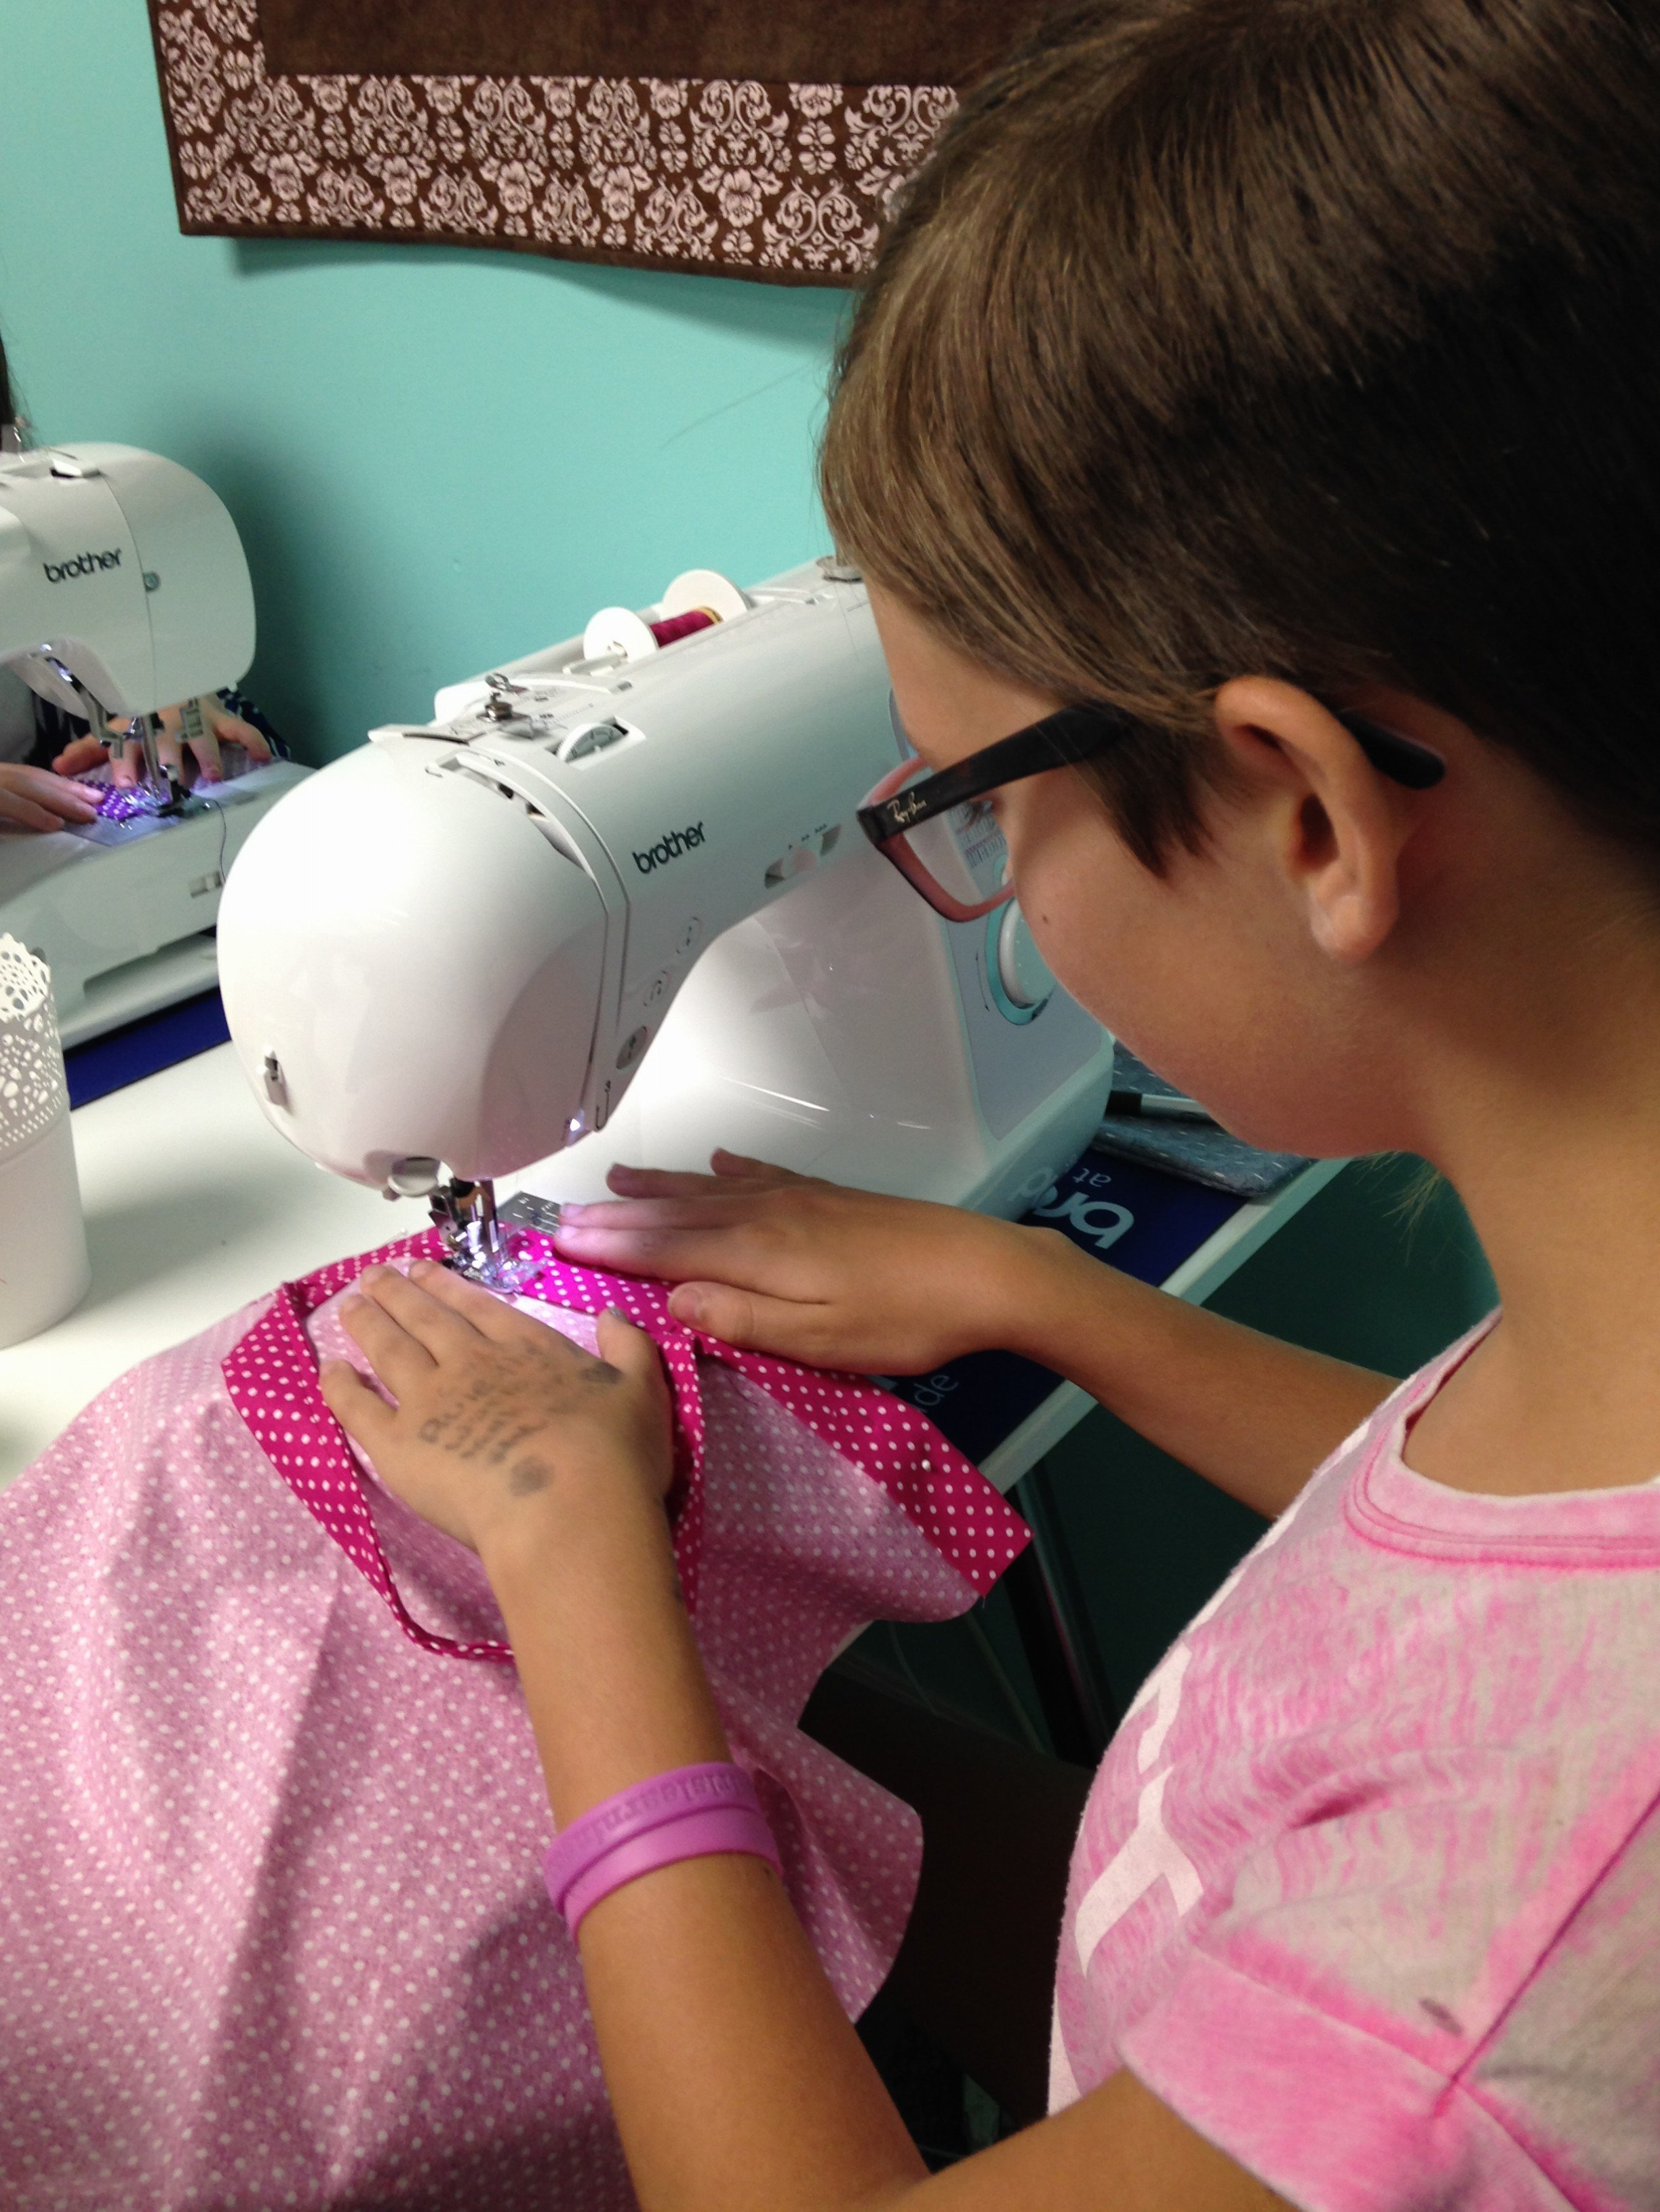 Sewing on Fabric